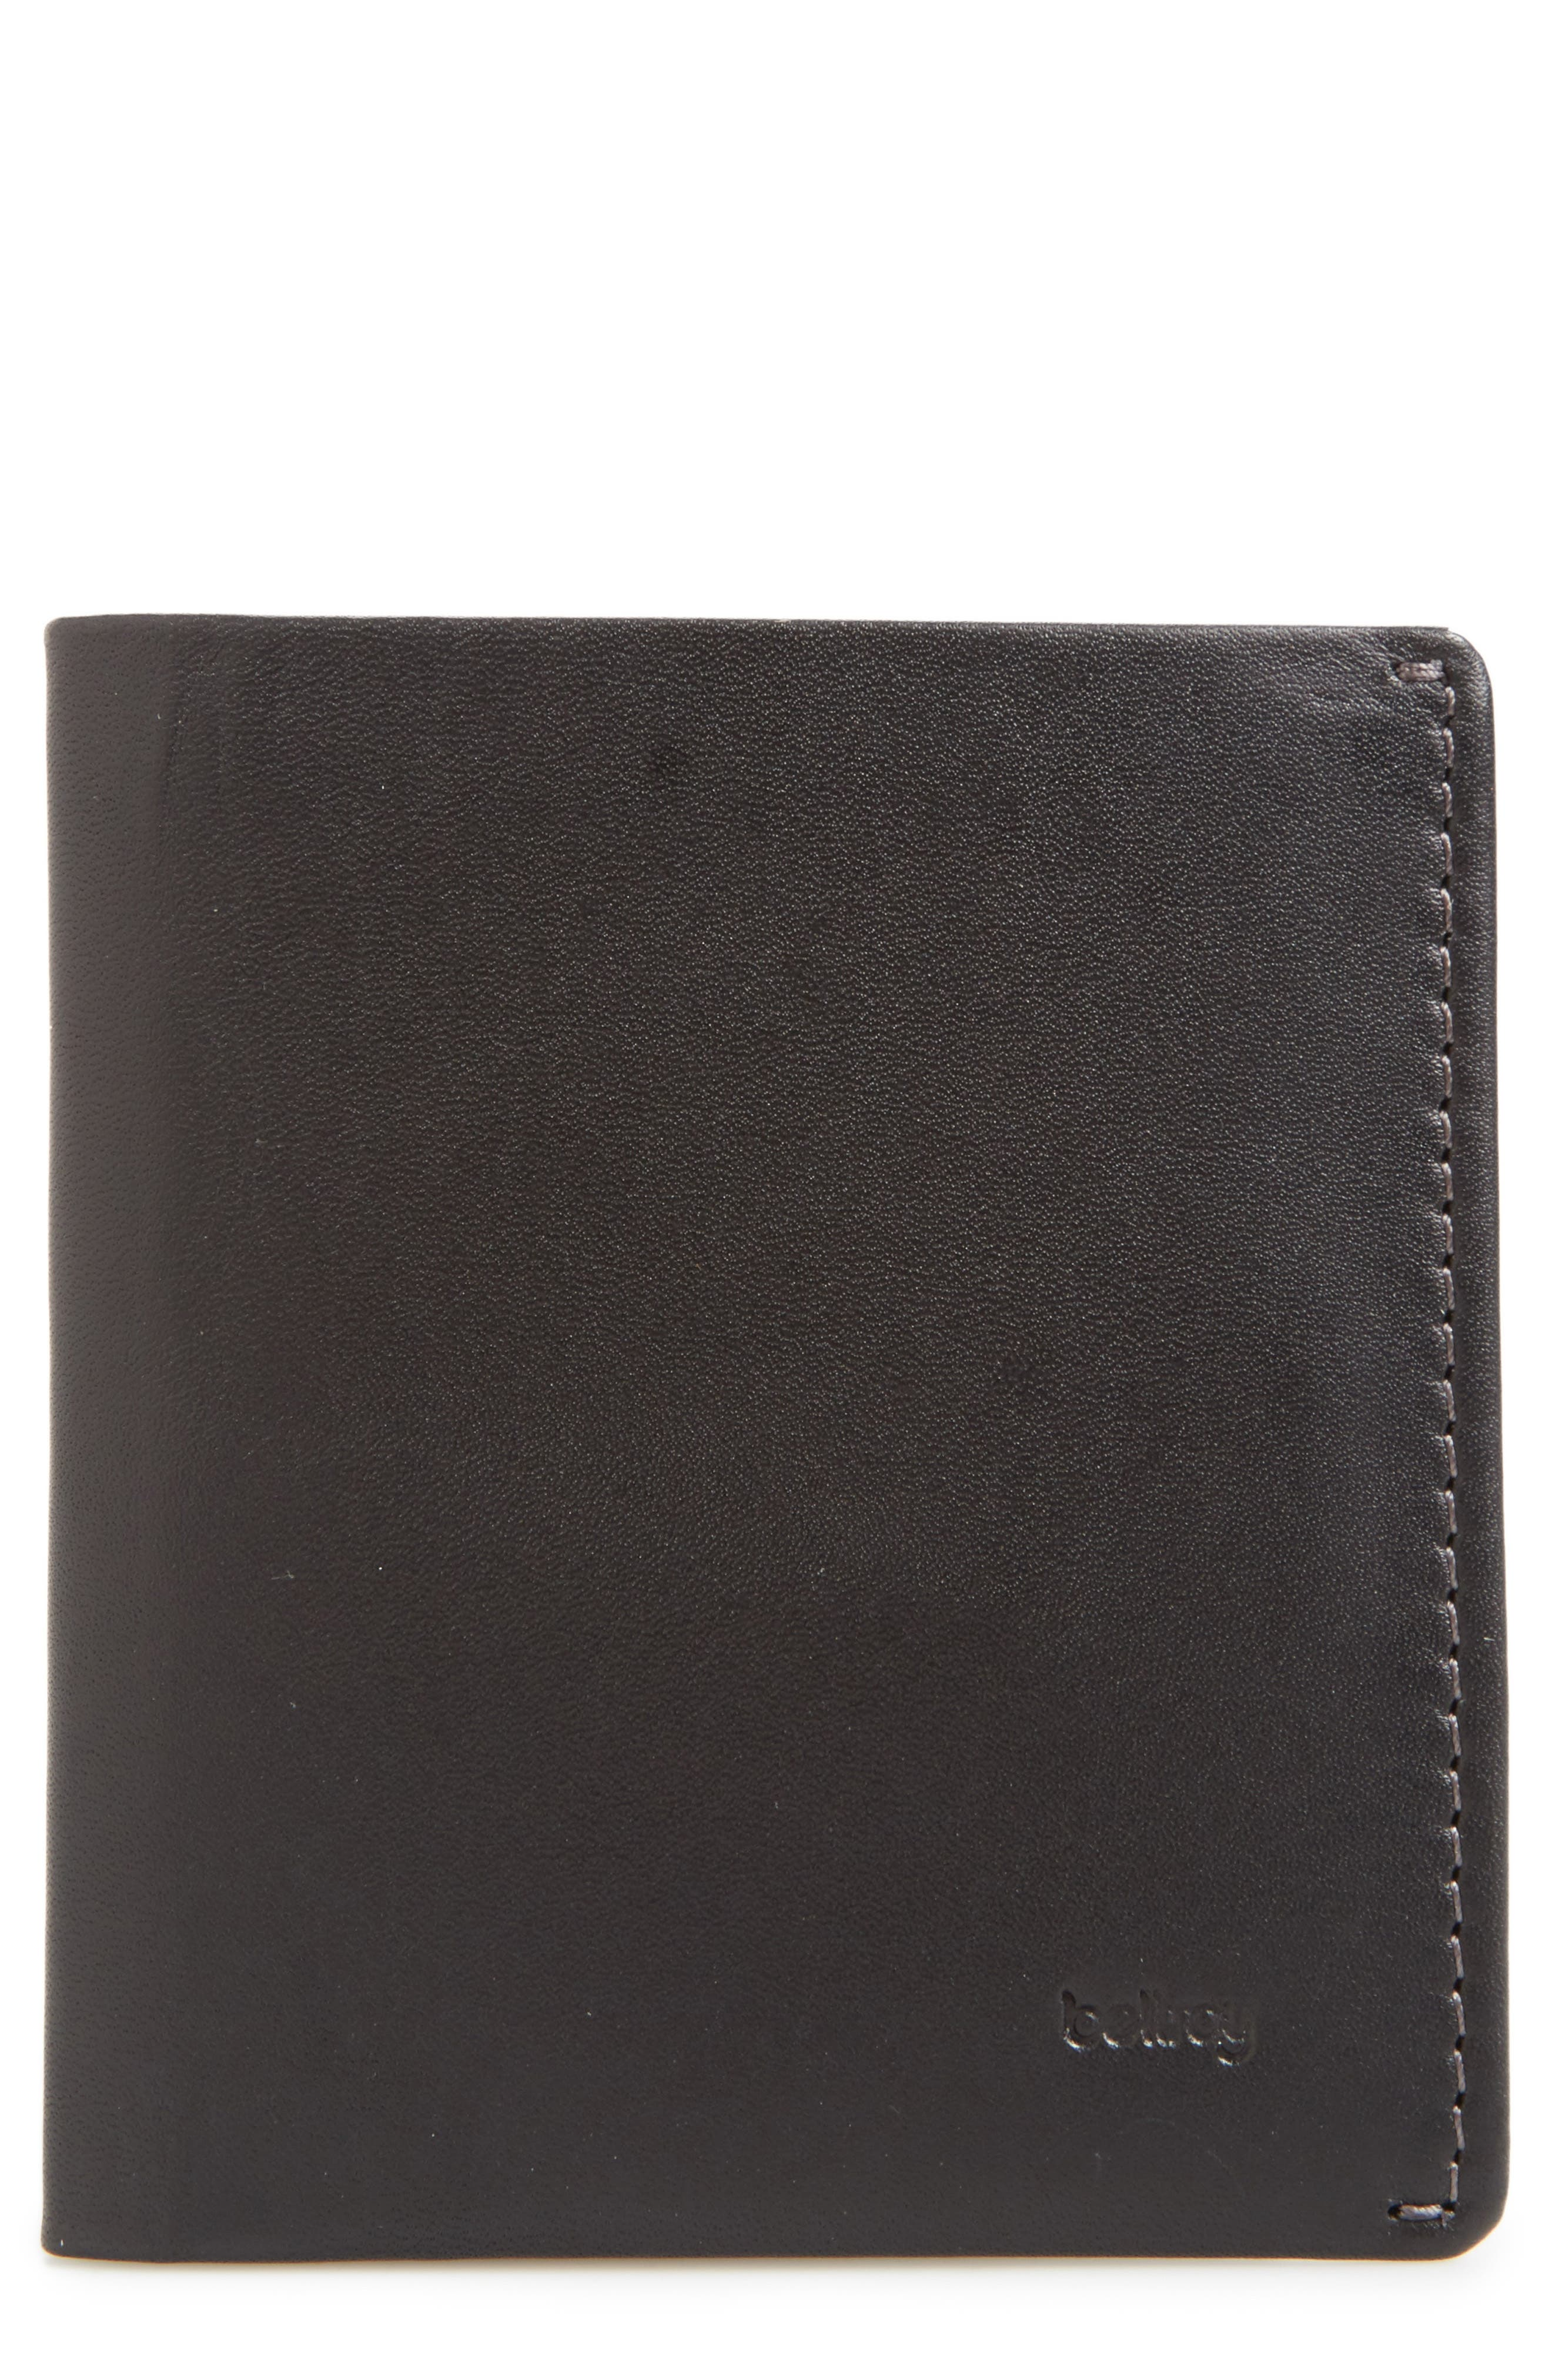 Note Sleeve Wallet,                         Main,                         color, Black